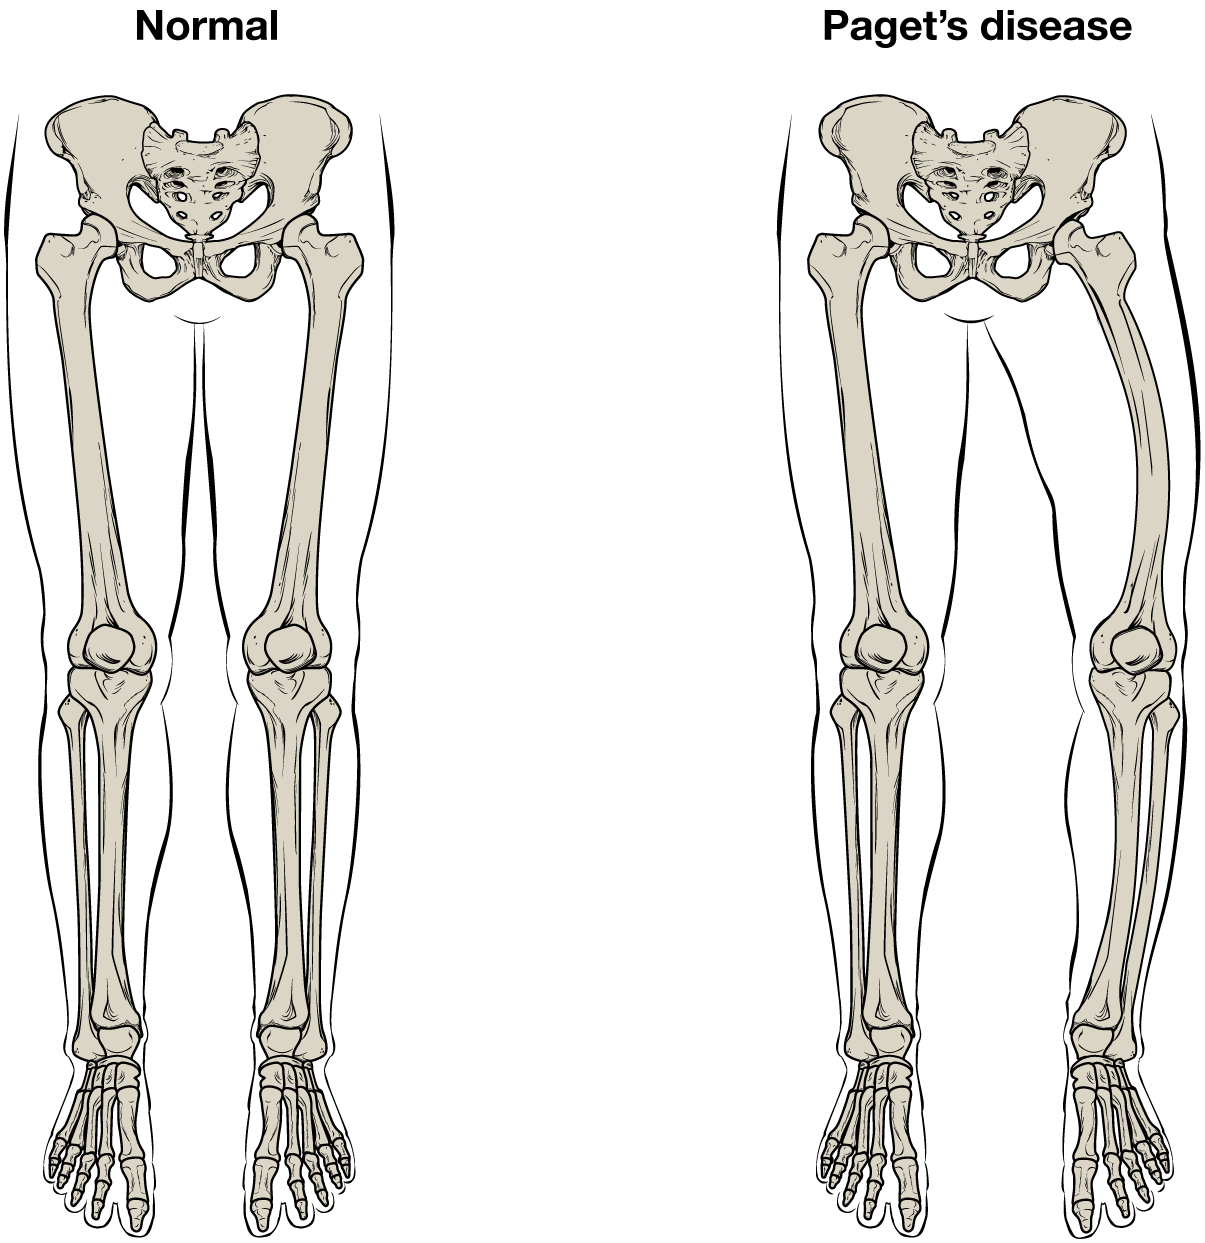 This illustration shows the normal skeletal structure of the legs from an anterior view. The flesh of the legs and feet are outlined around the skeleton for reference. A second illustration shows the legs of someone with Paget's disease. The affected person's left femur is curved outward, causing the left leg to be bowed and shorter than the right leg.